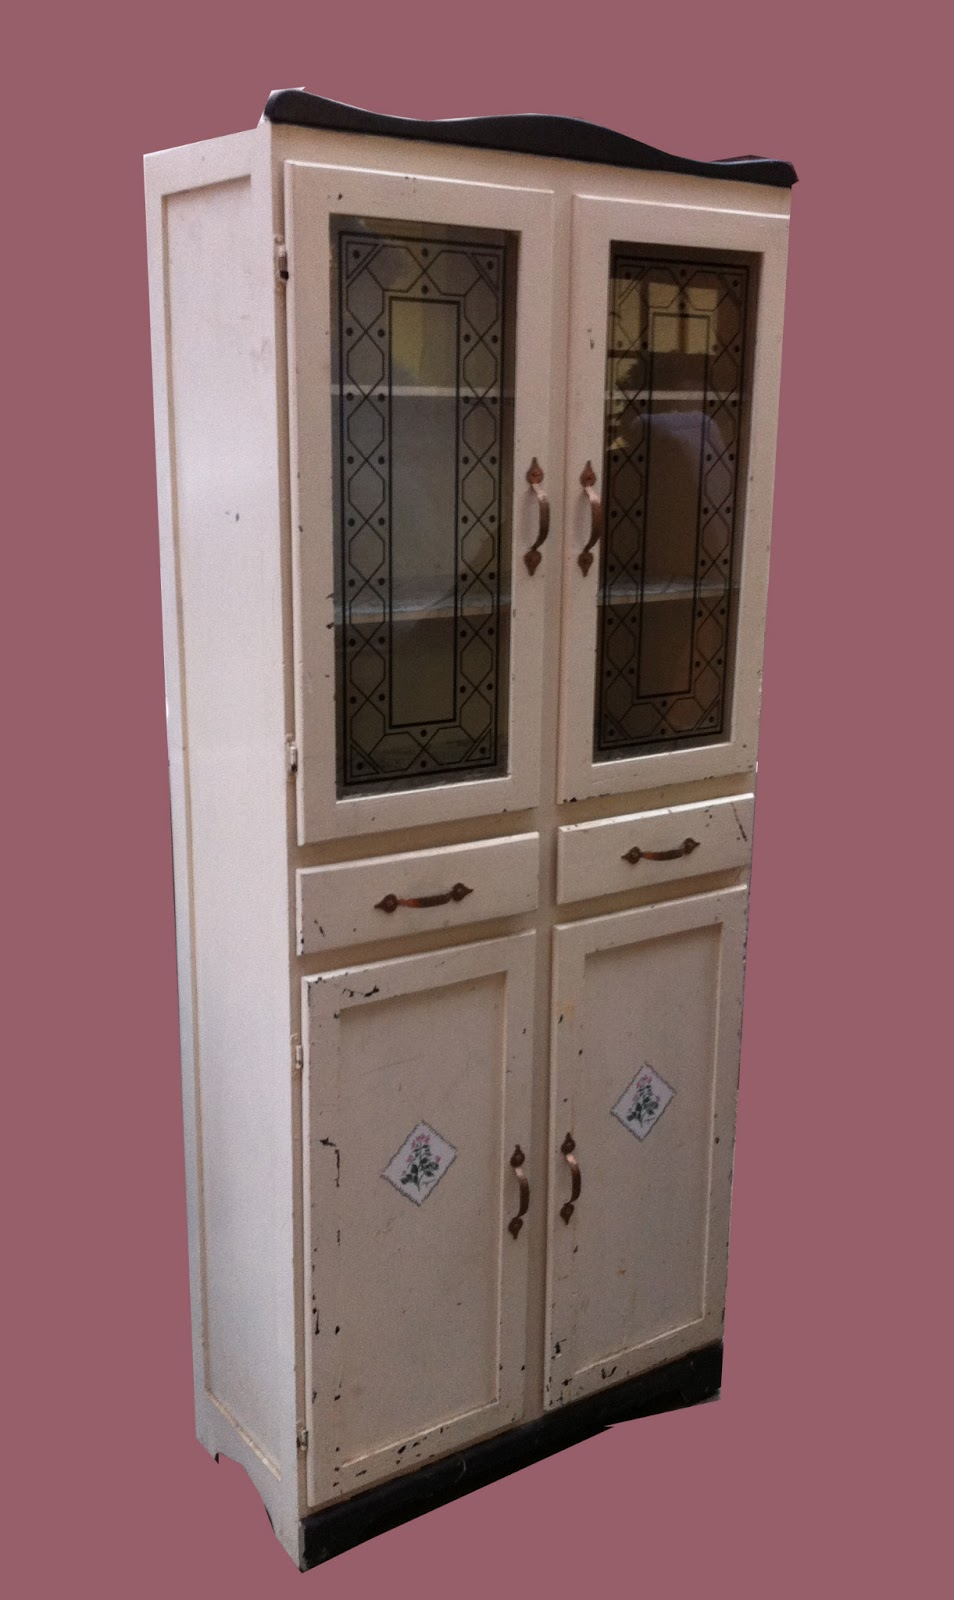 Uhuru Furniture & Collectibles: Vintage Freestanding ...